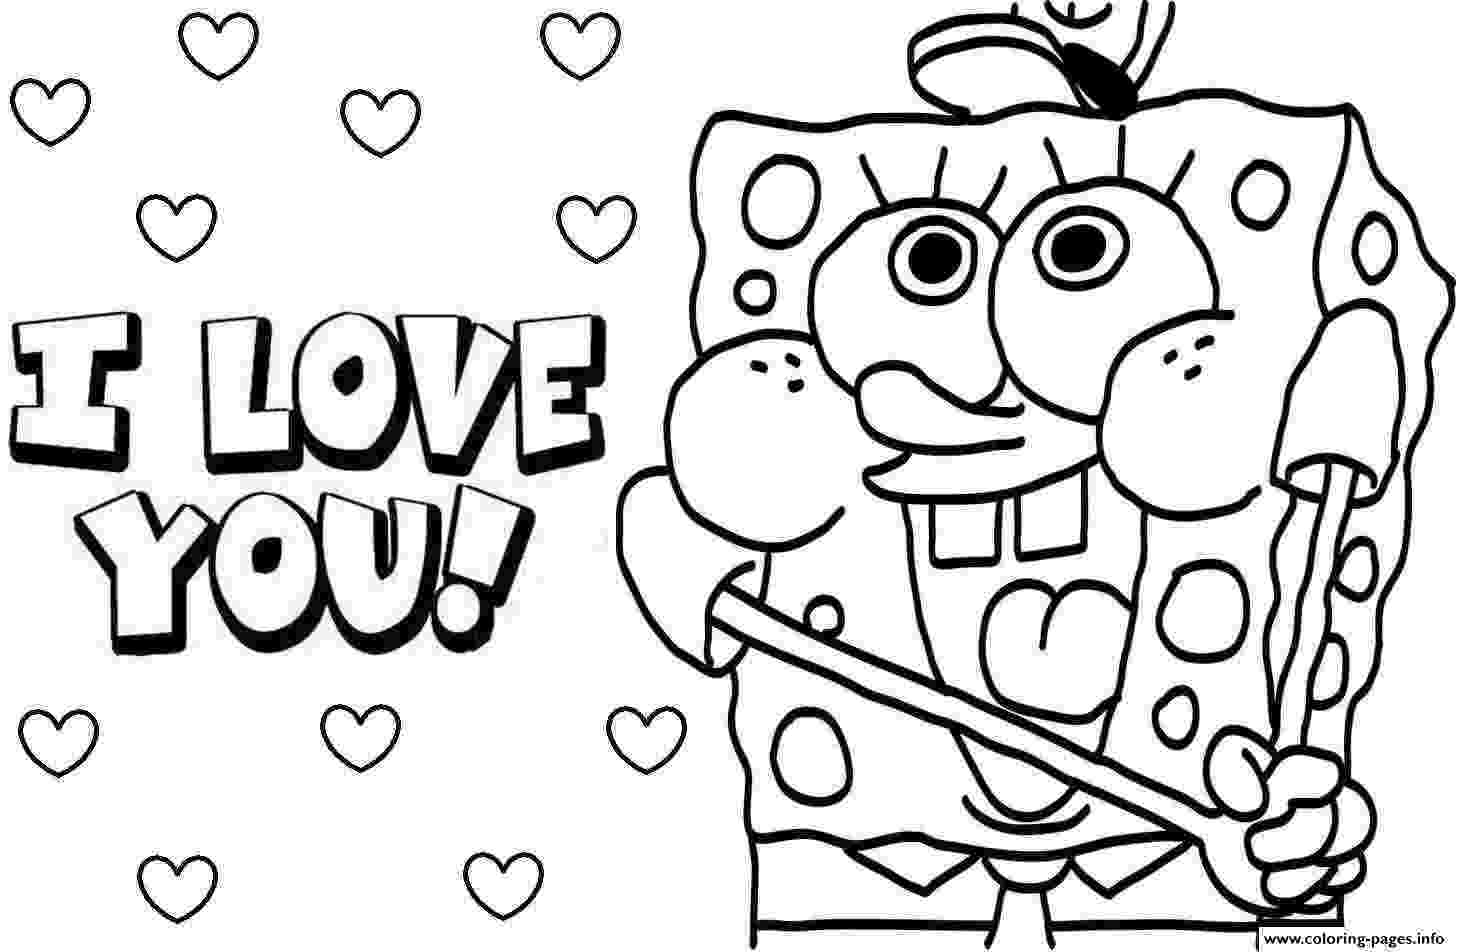 i love you coloring pages printable i love you coloring pages for adults explore colouring love i you printable coloring pages